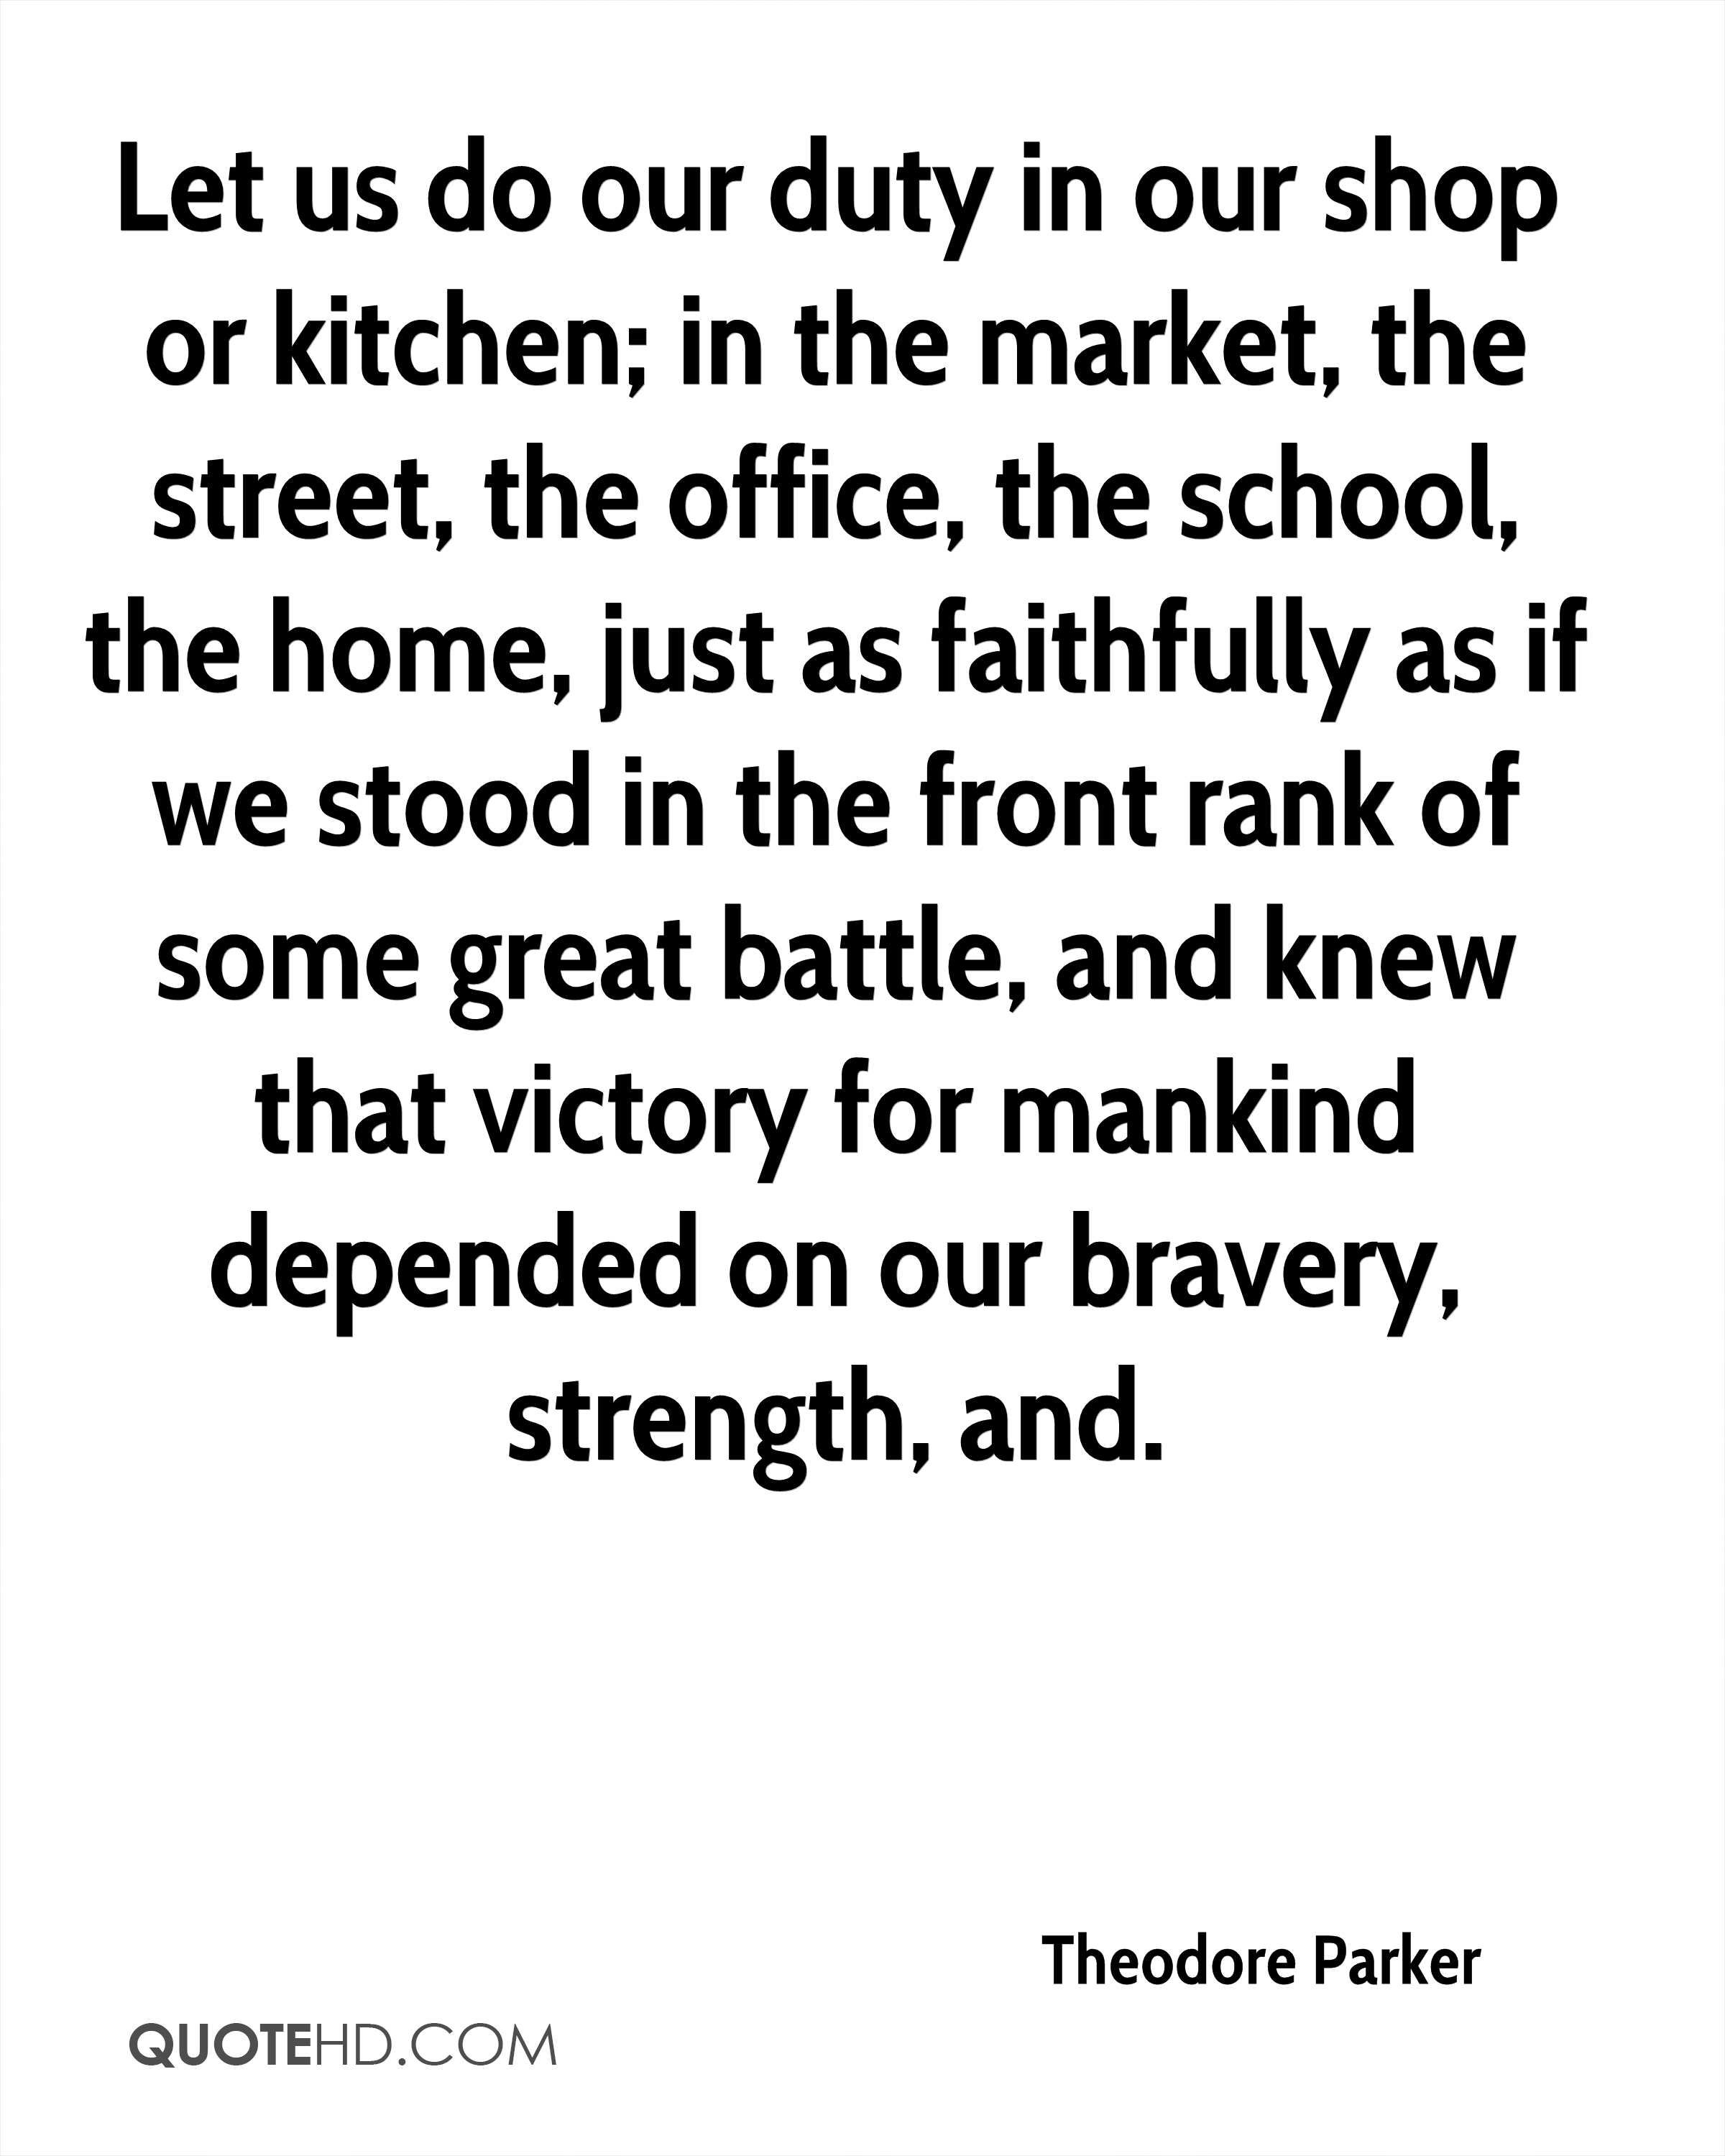 Theodore Parker Quotes | QuoteHD